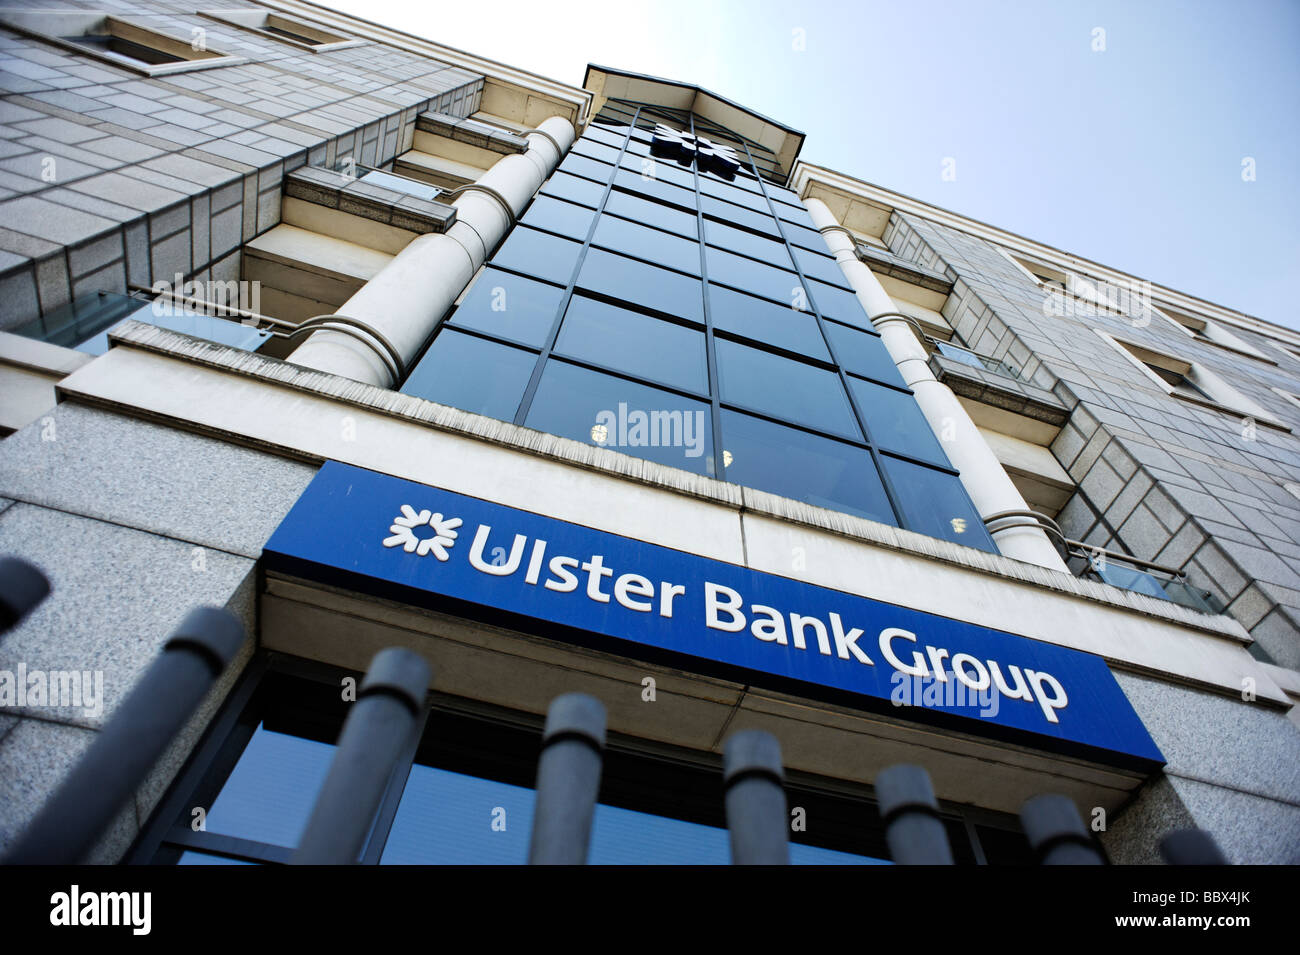 The Ulster Bank Group centre at George s Quay Dublin Republic of Ireland - Stock Image